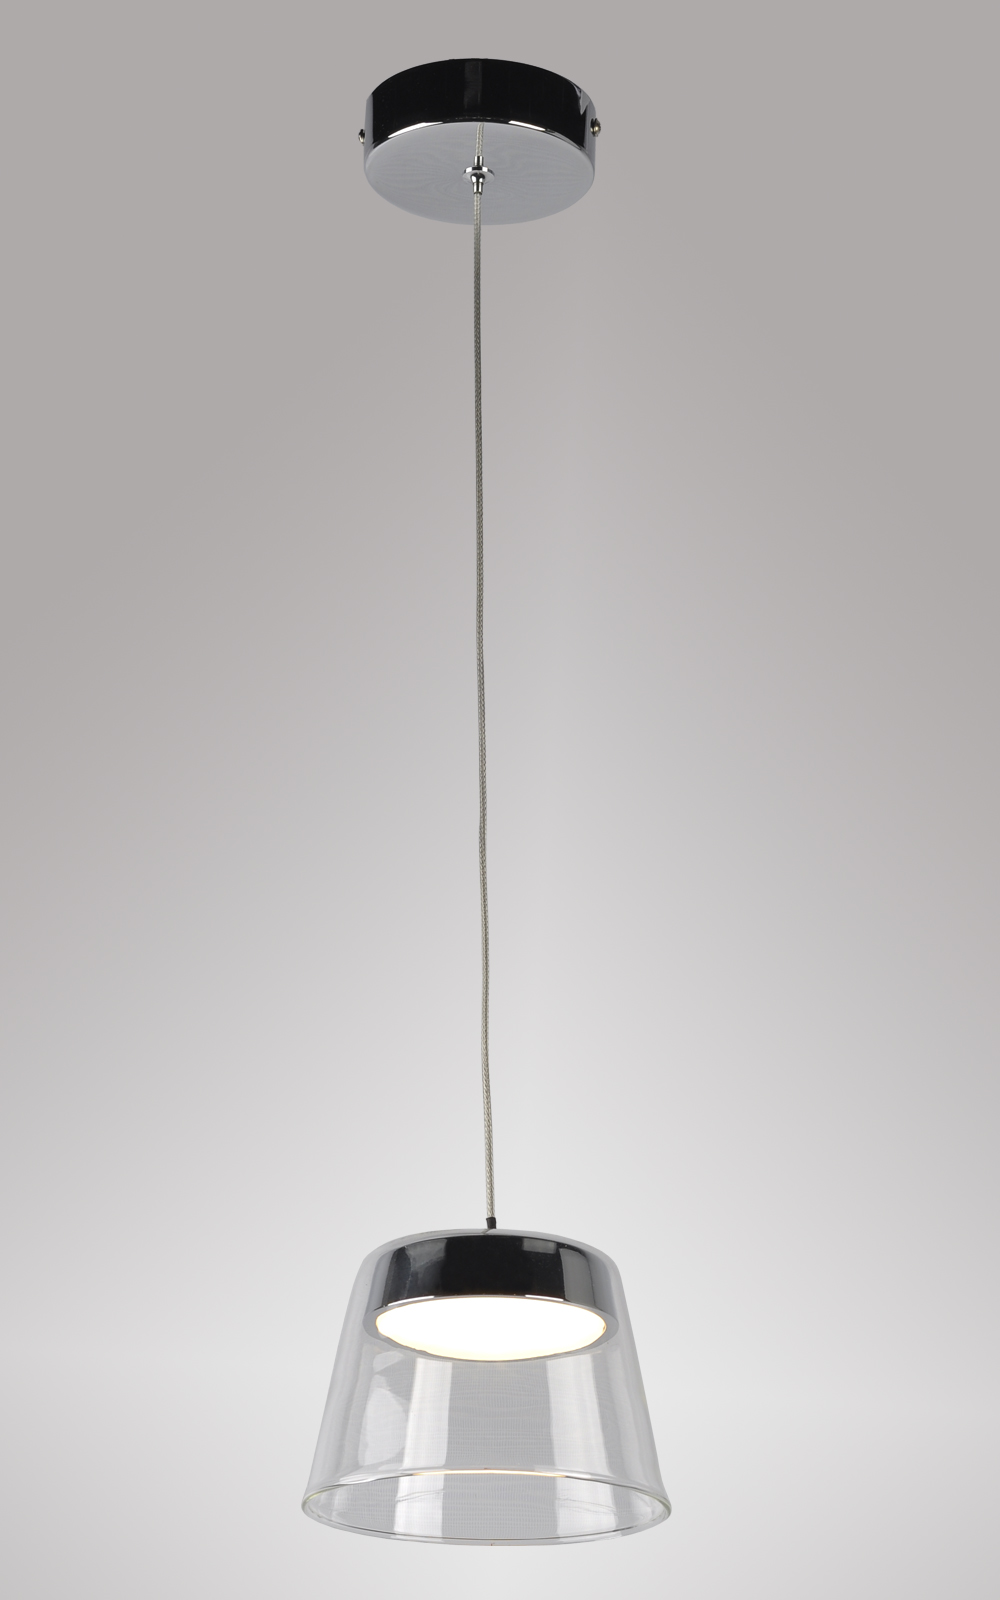 Latest new italy design simple design led pendant lamp with clear glass shade for wholesale